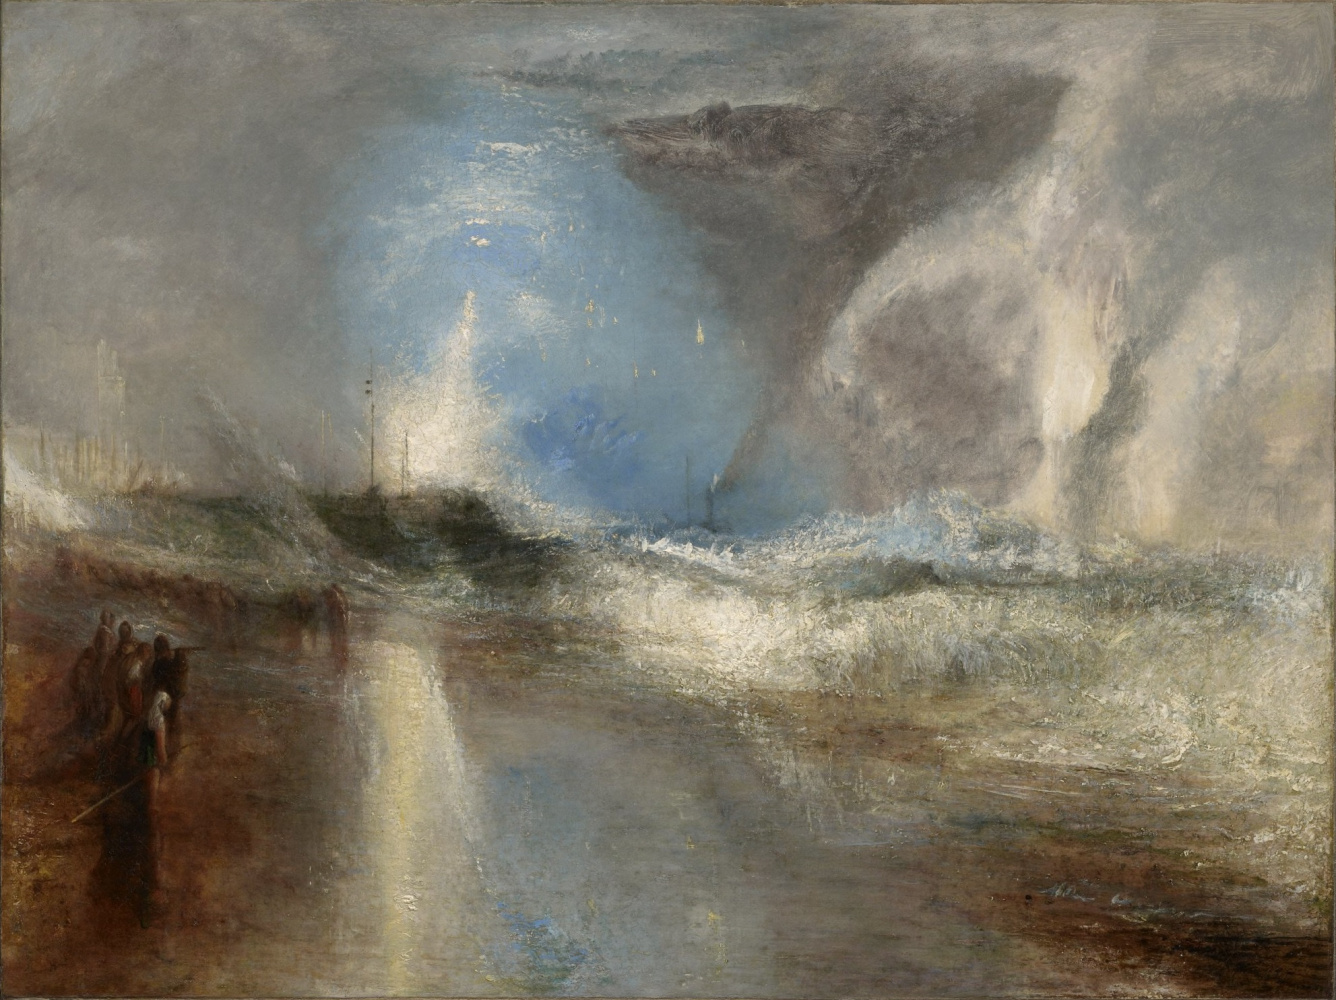 Touches to the portrait: light and darkness of William Turner